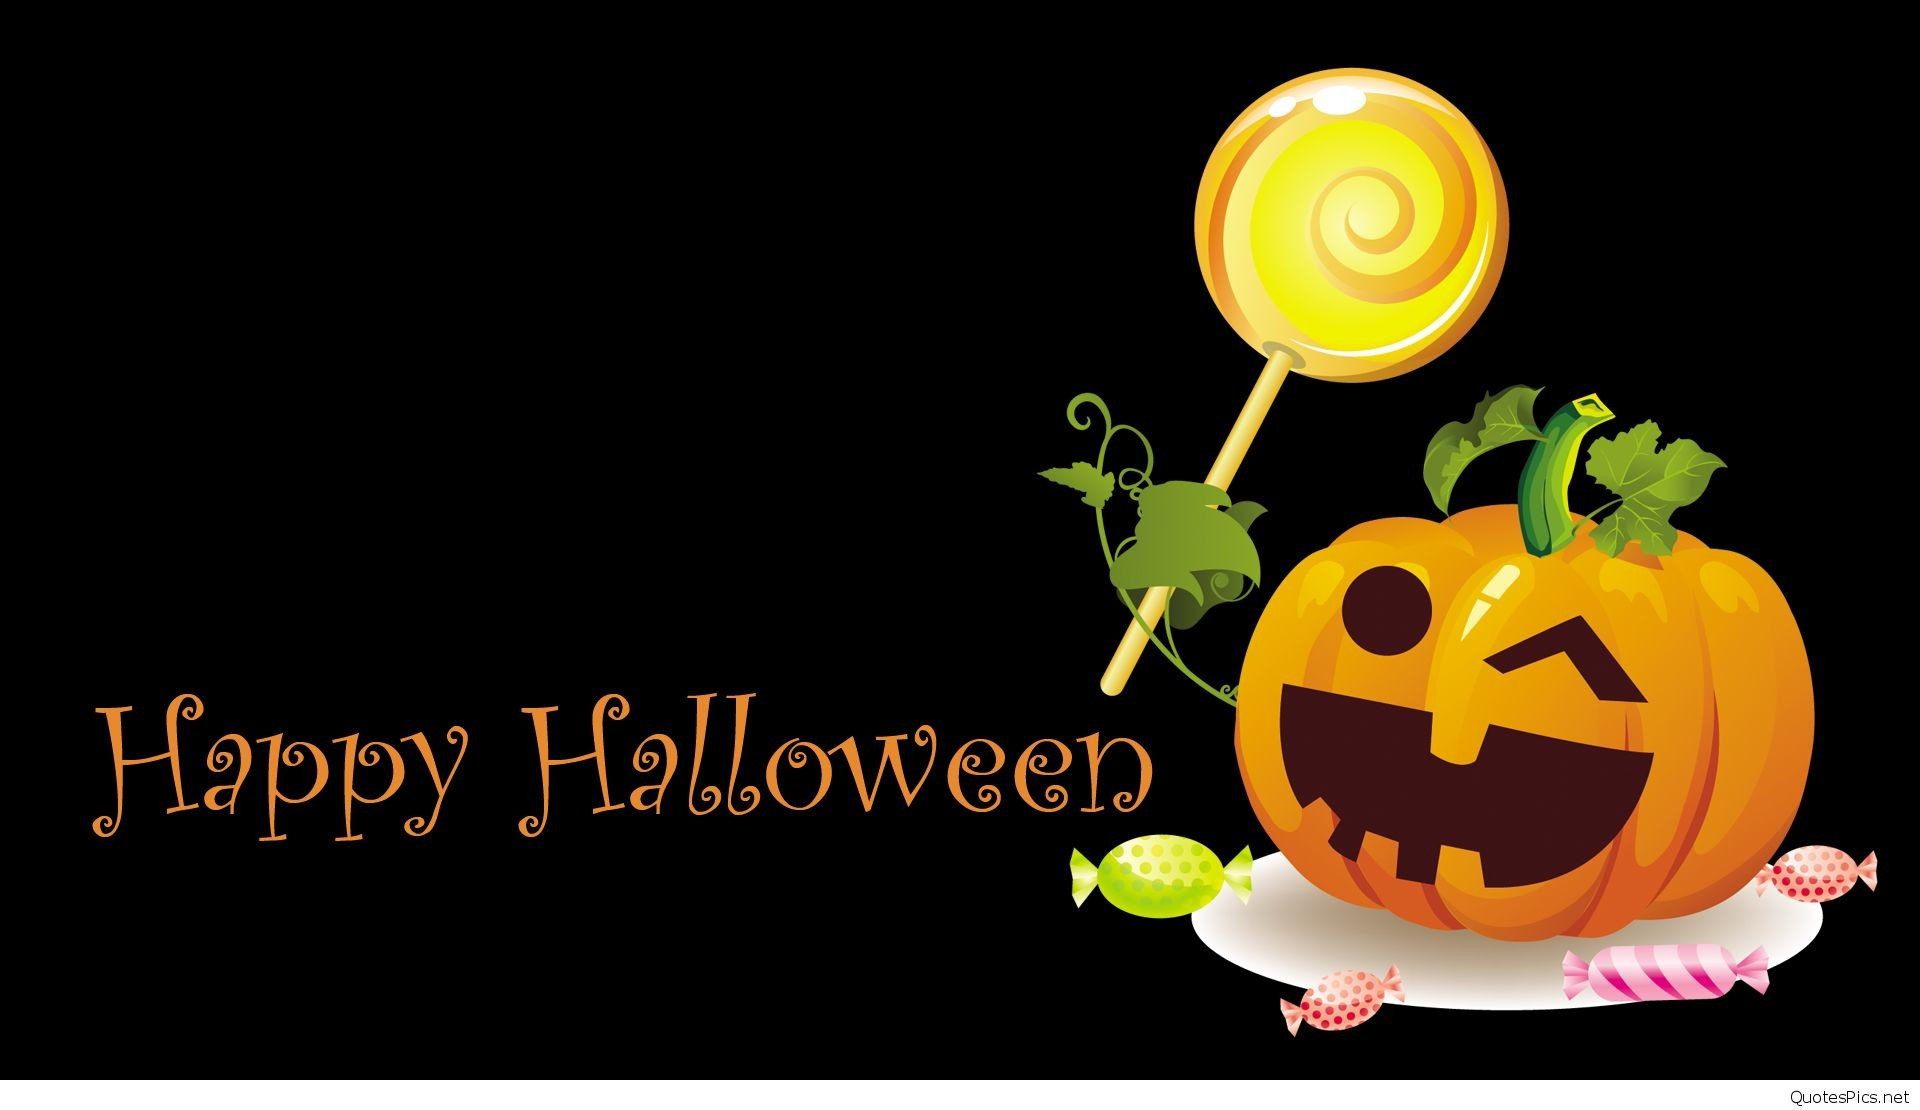 Funny sayings wallpapers 58 images - Funny happy halloween wallpaper ...